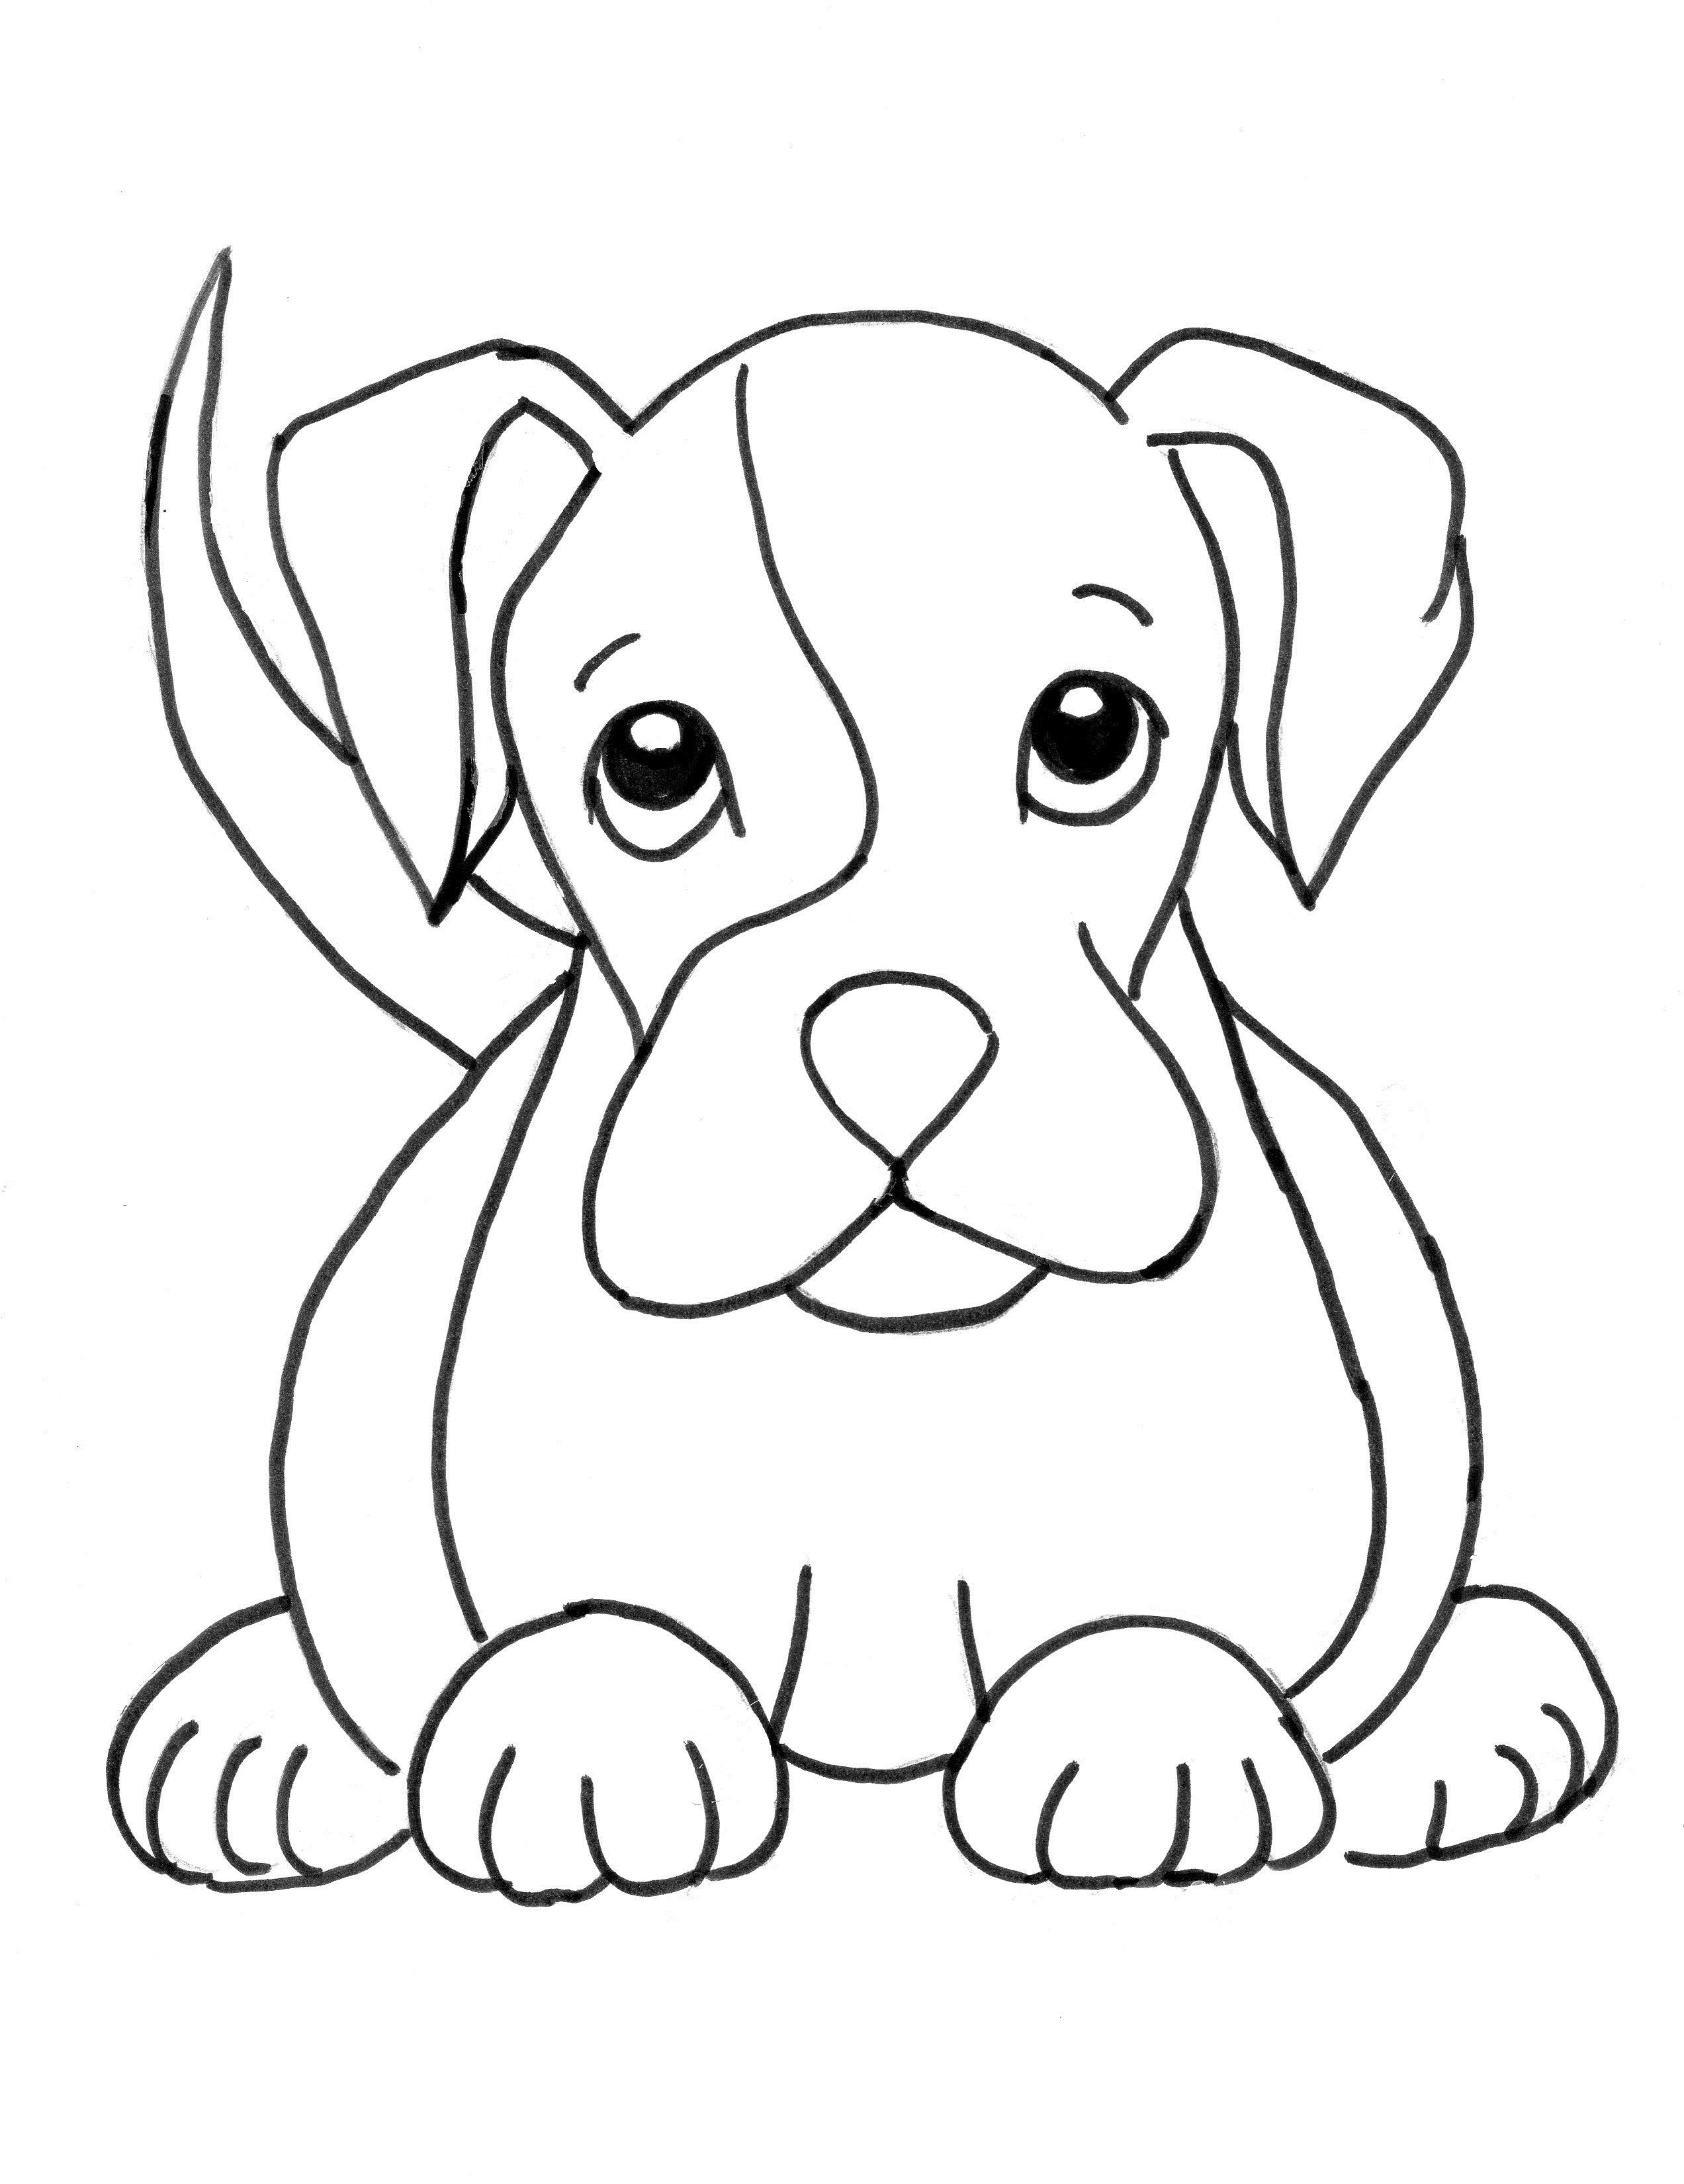 Galerry coloring pages printable school